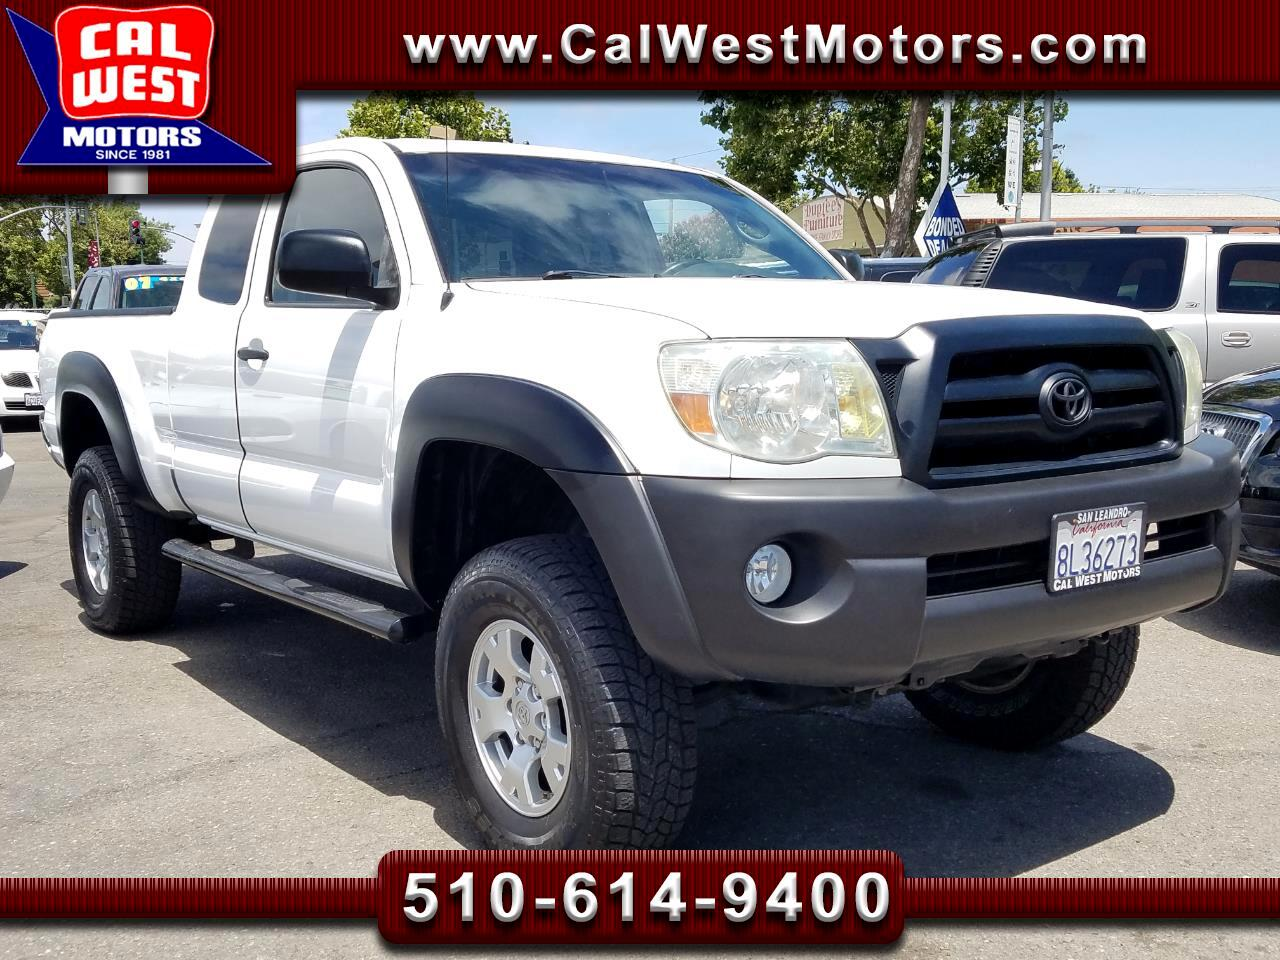 2007 Toyota Tacoma 4X4 Access Cab 4D 5-Speed 1Owner ExMtnce SuperNice